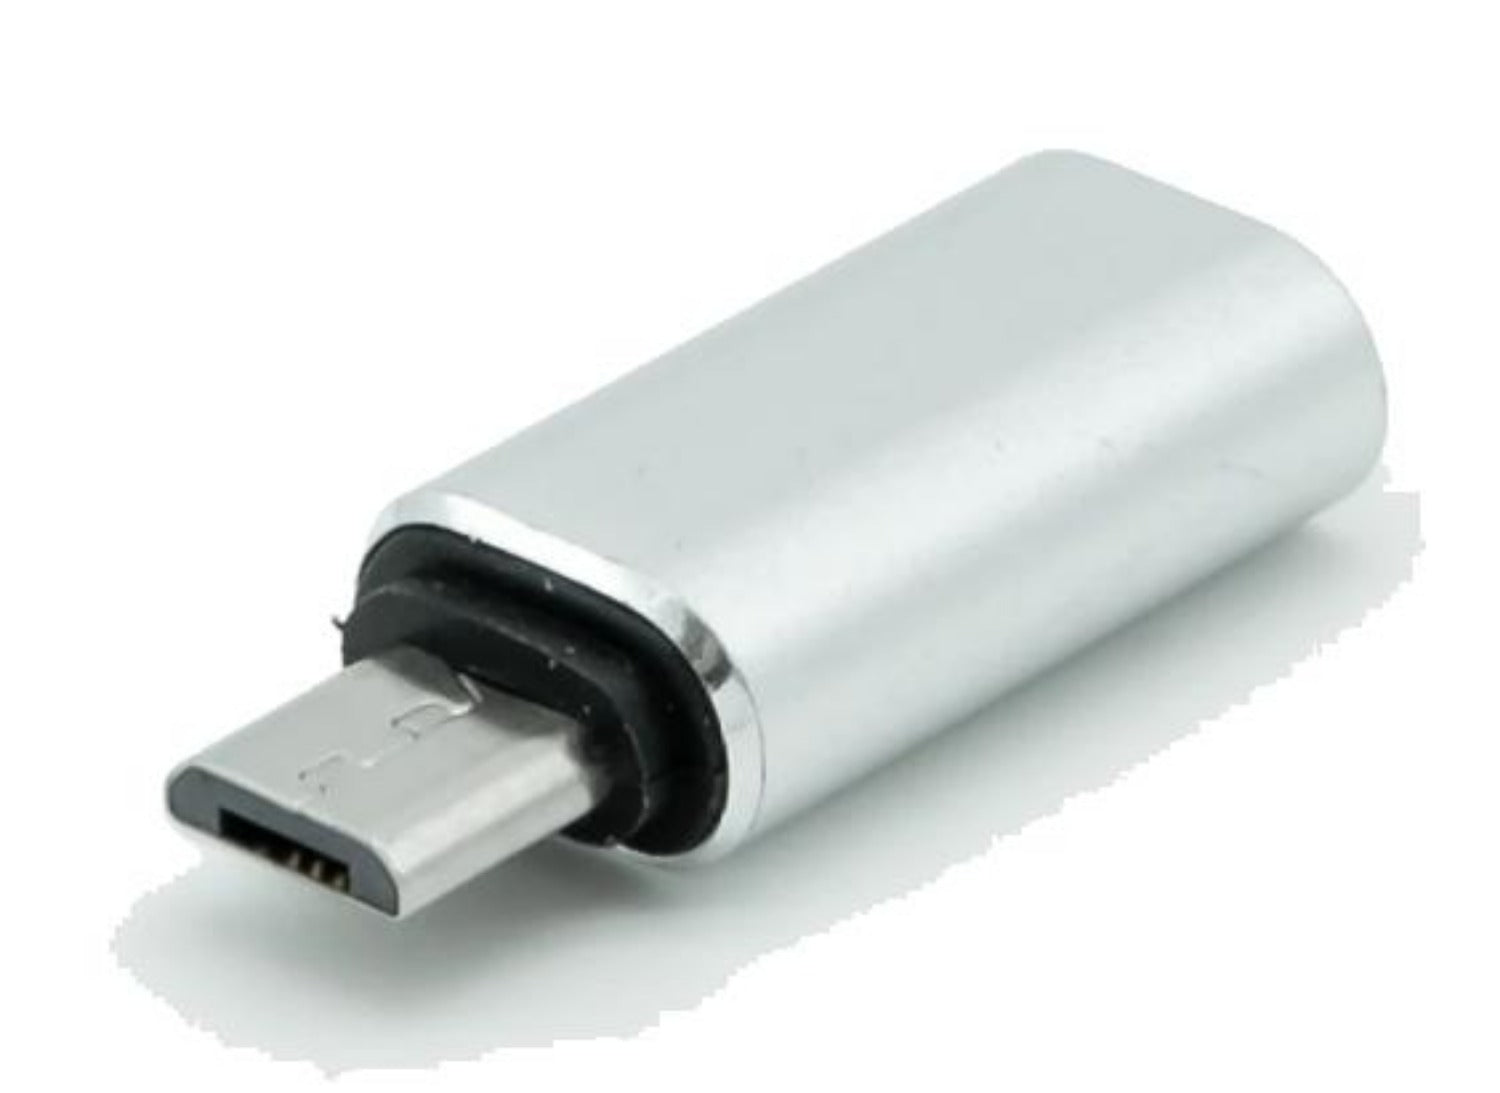 Dynamode C-TC-MIC USB Type-C to MicroUSB Adapter